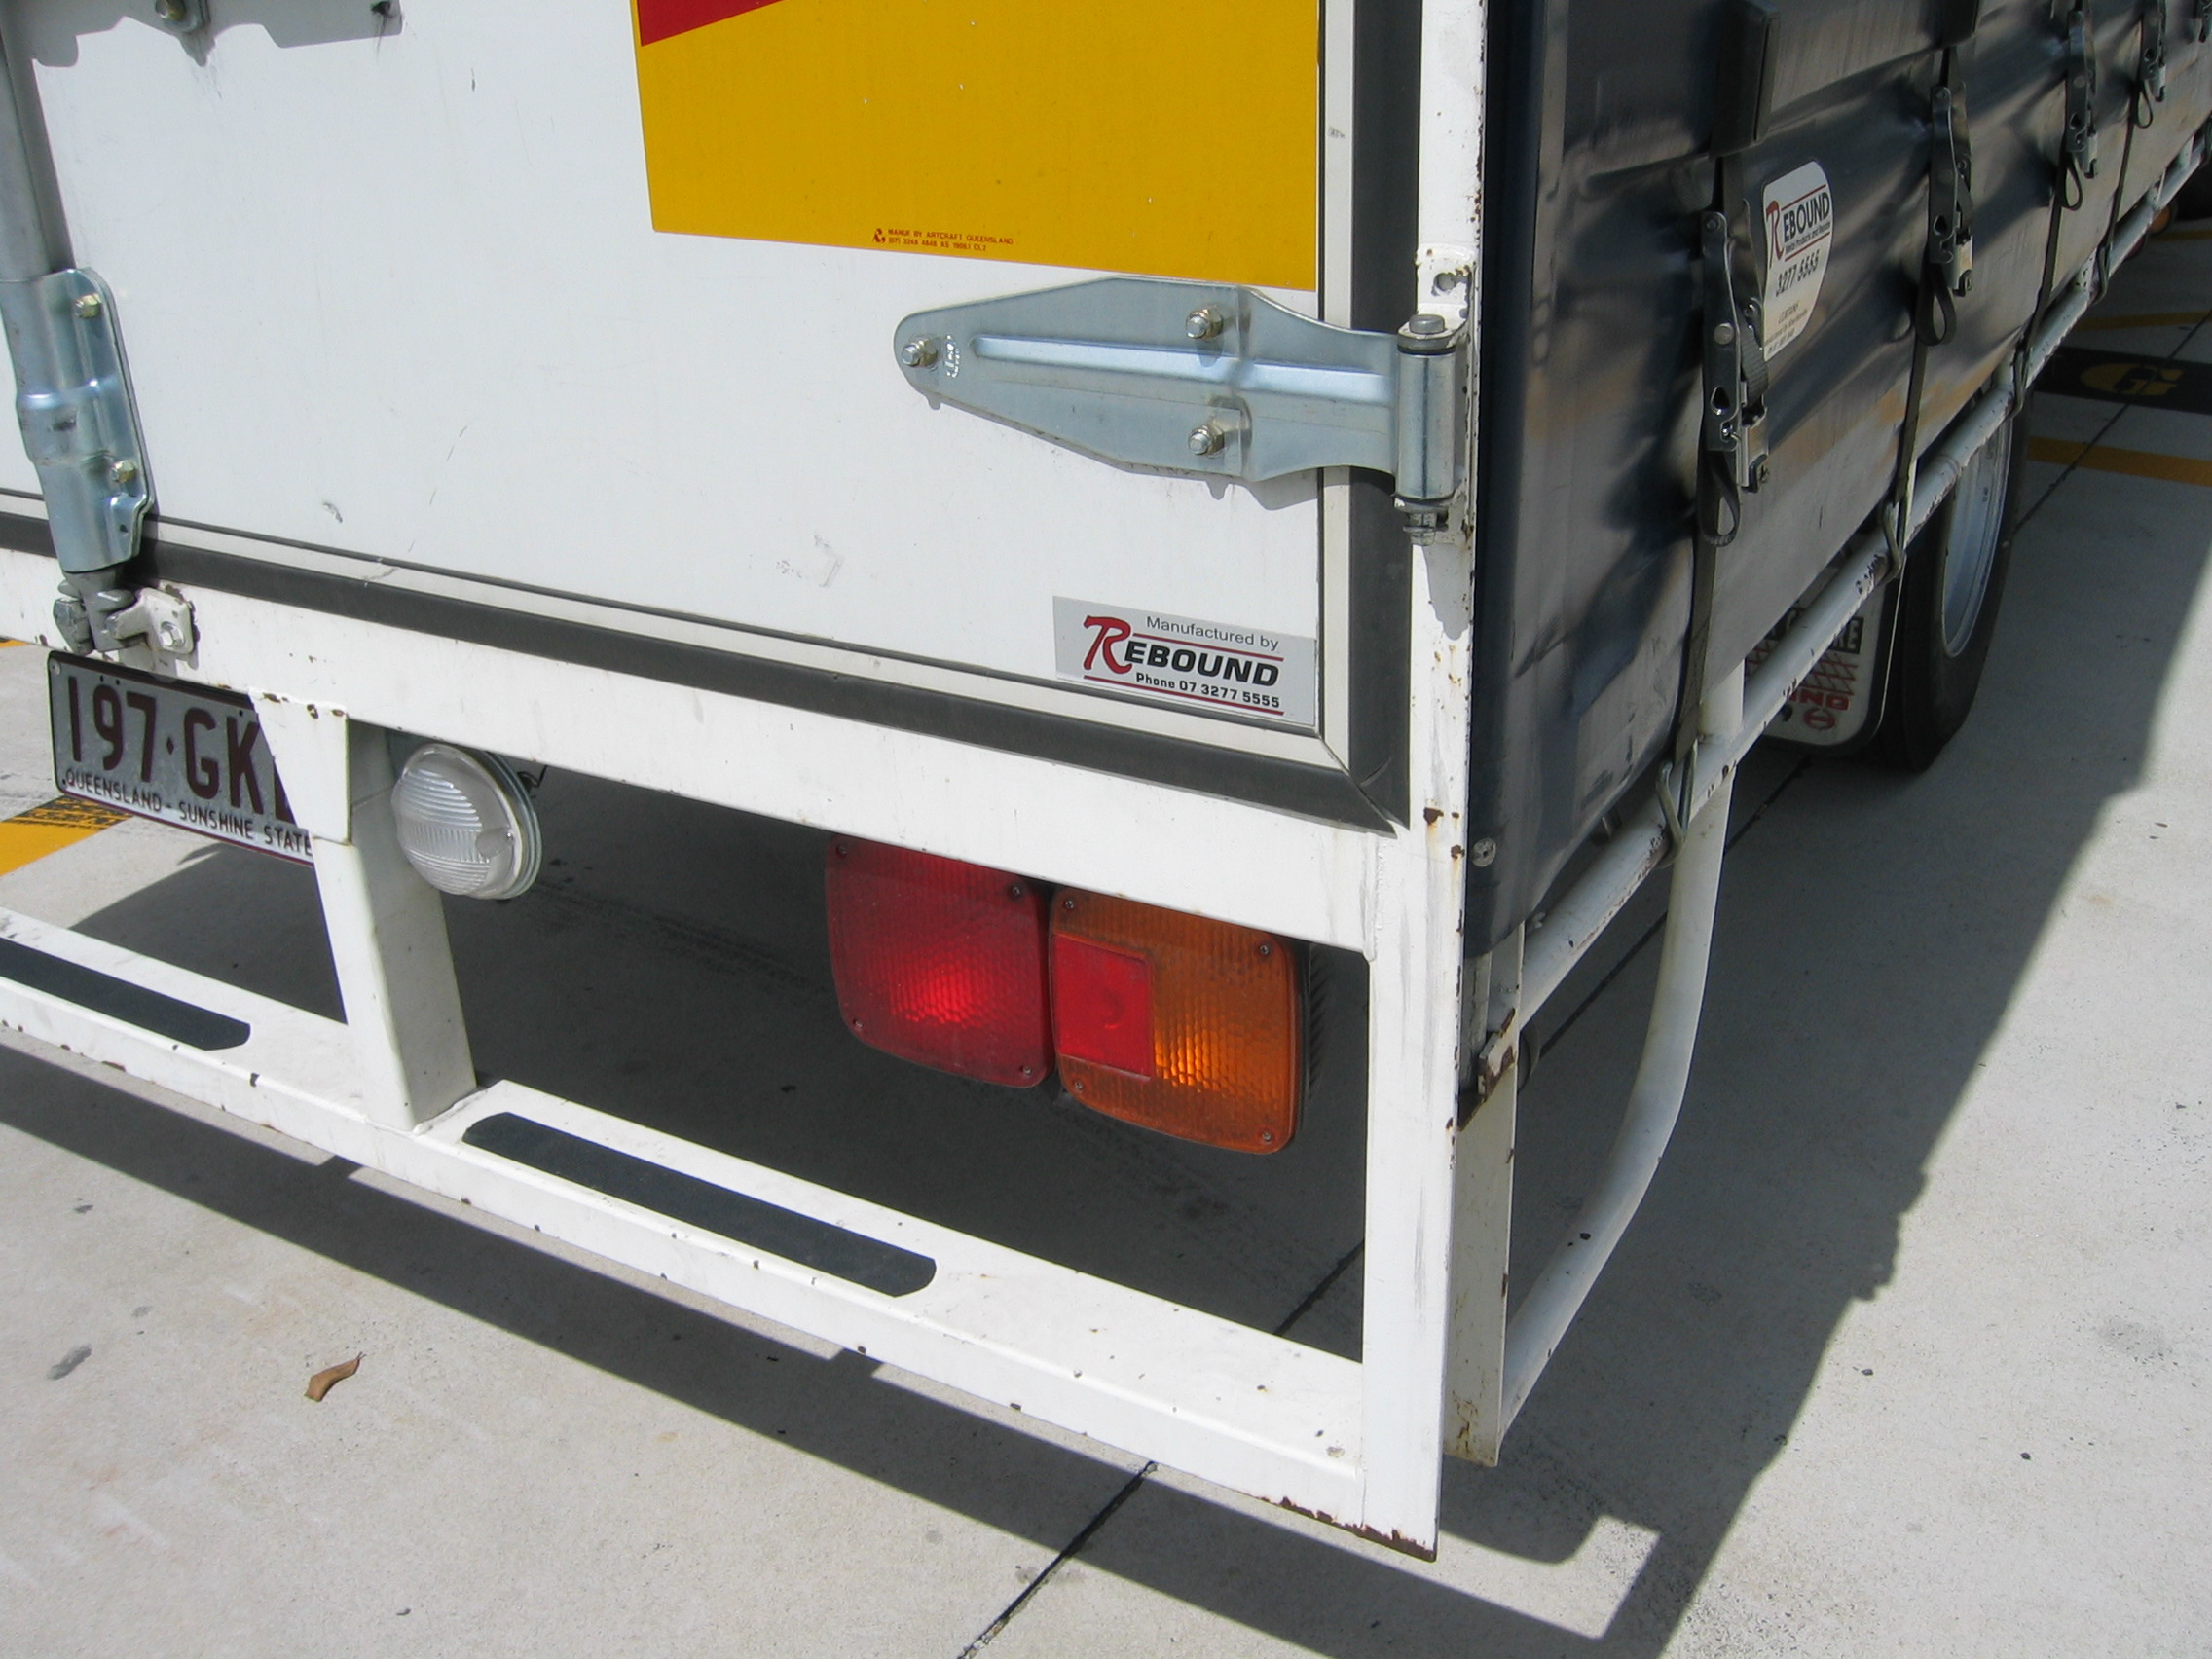 Product Nameplate on rear of a truck.